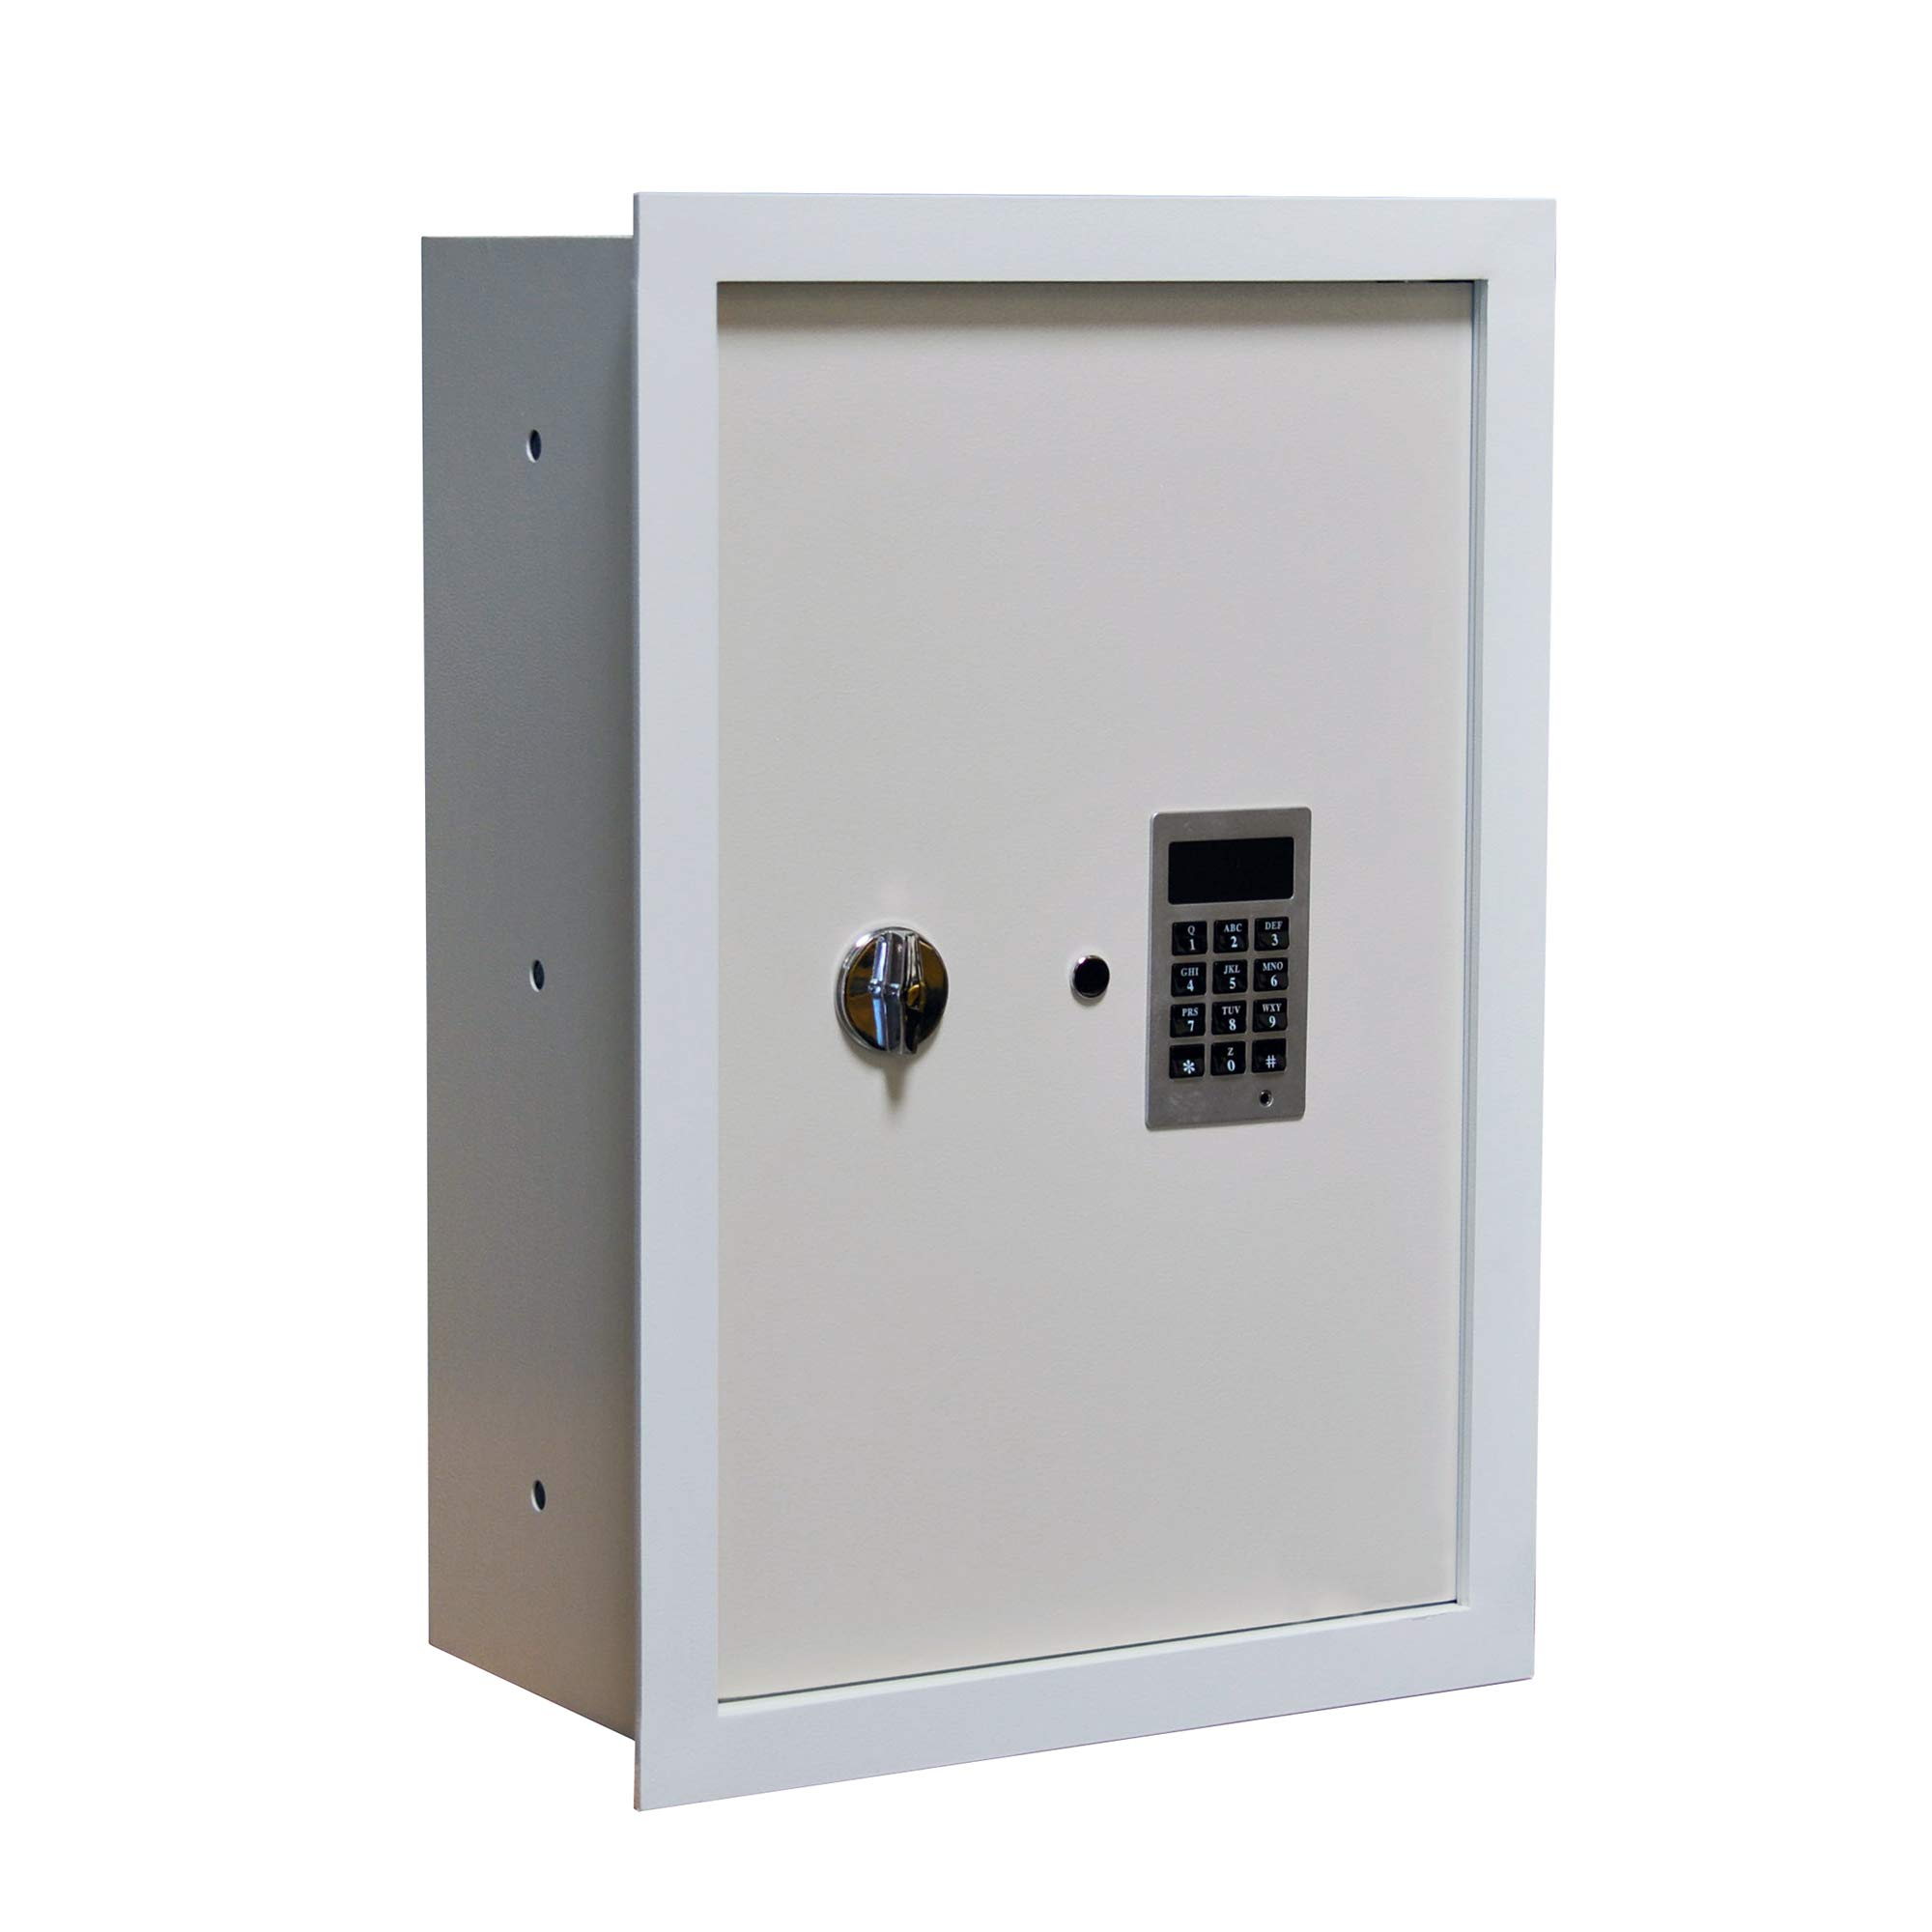 Mamba Vault Fire Resistant Wall Safe 8'' Deep with Easy to Program Electronic Digital Lock by Mamba Vault